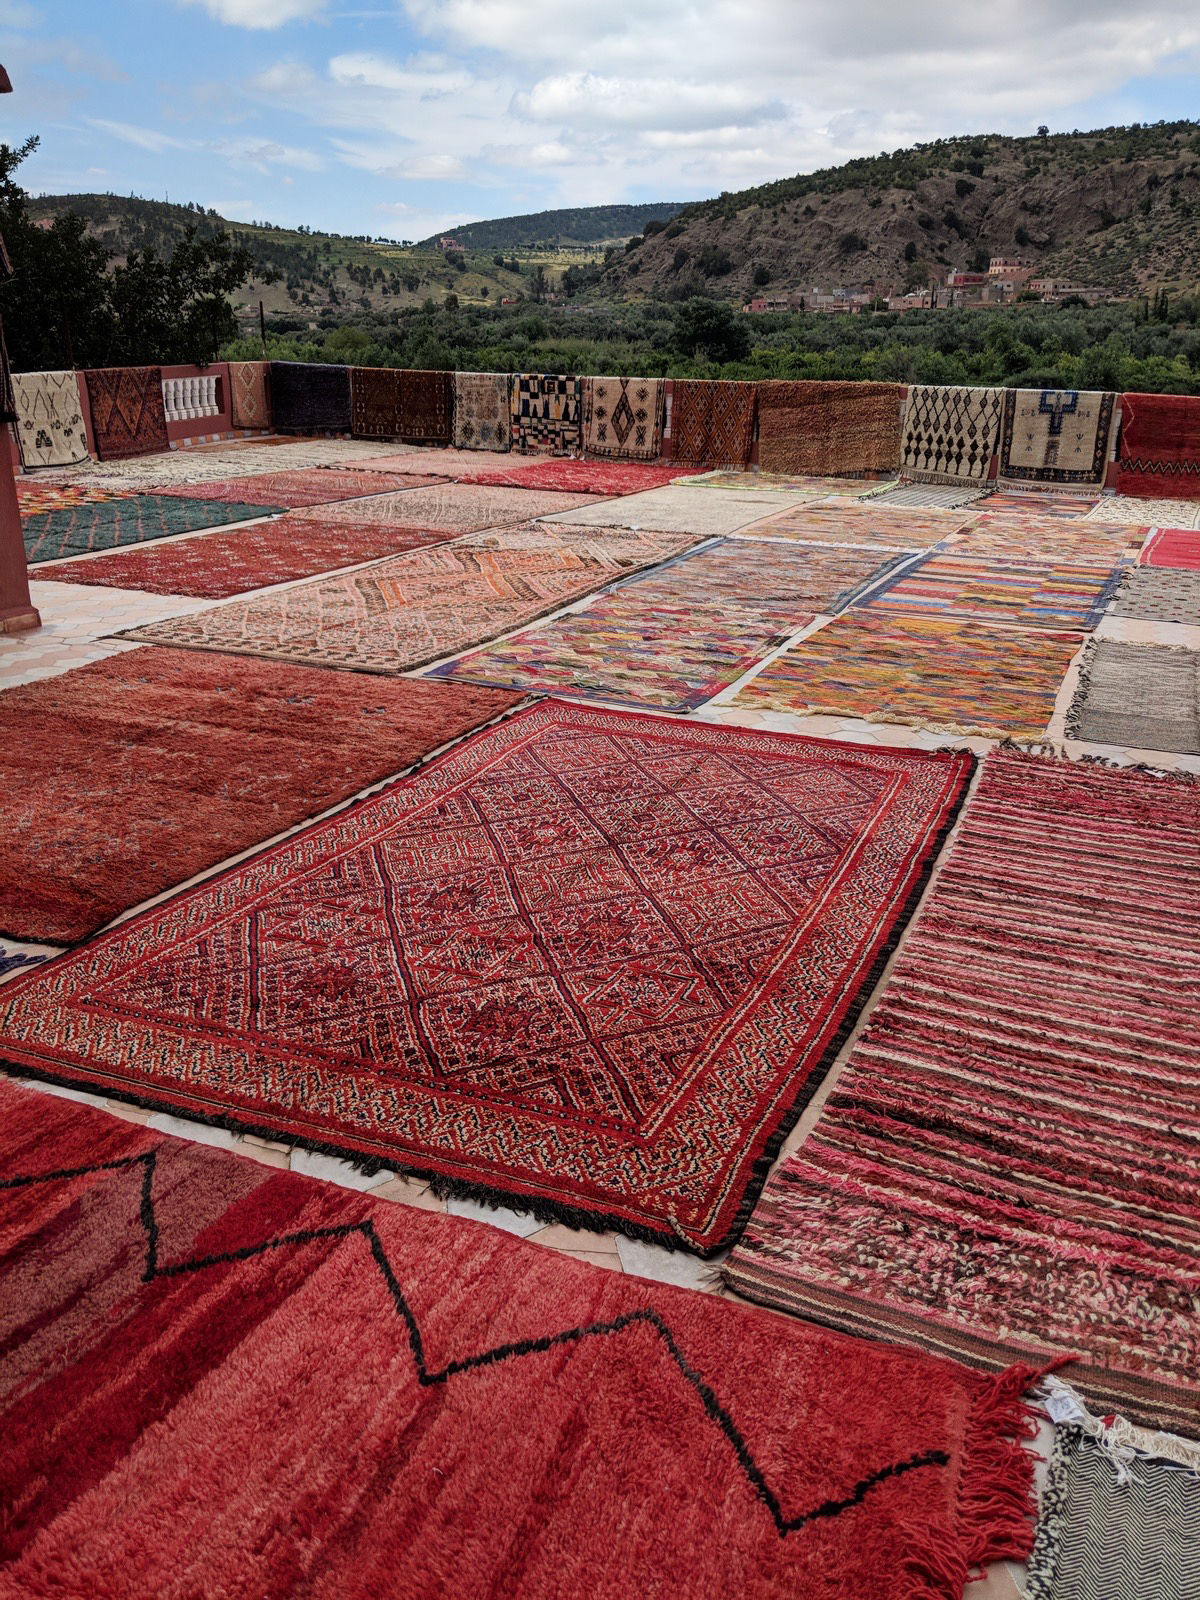 Our Moroccan Rug Guide